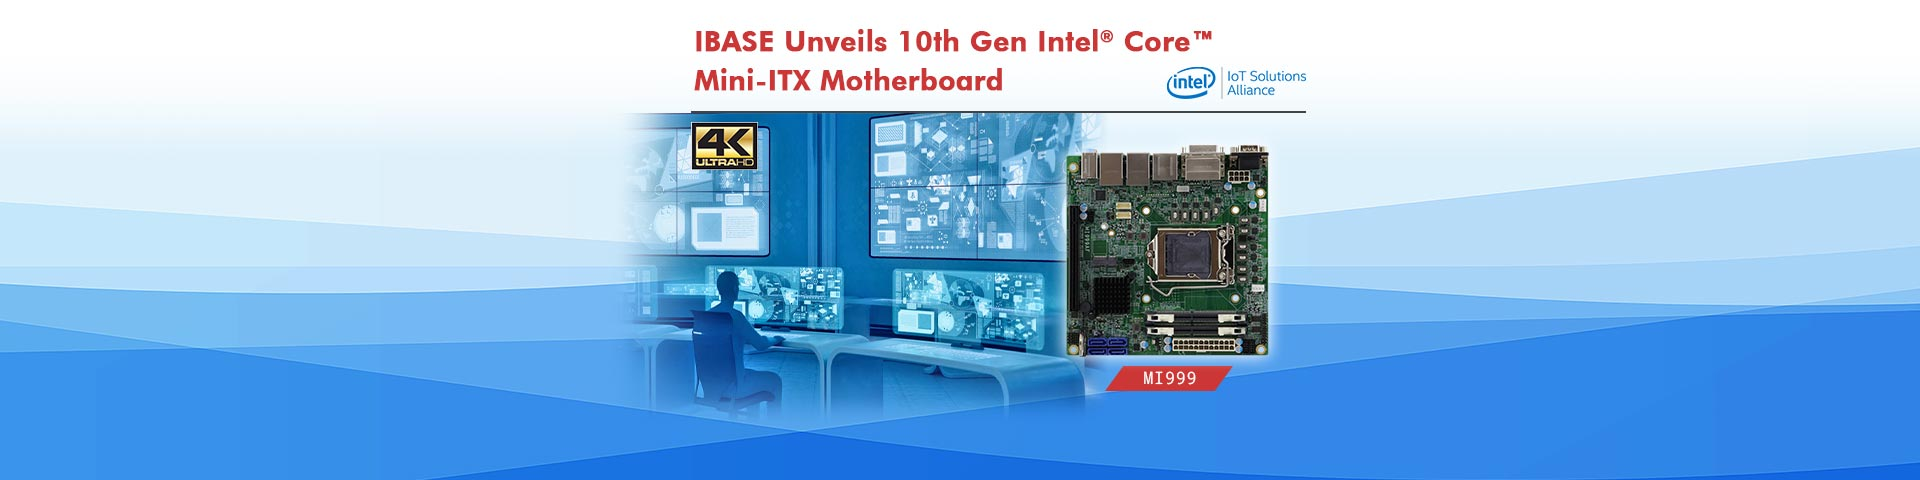 10th Gen Intel® Core™ (Comet Lake-S) Mini-ITX Motherboard